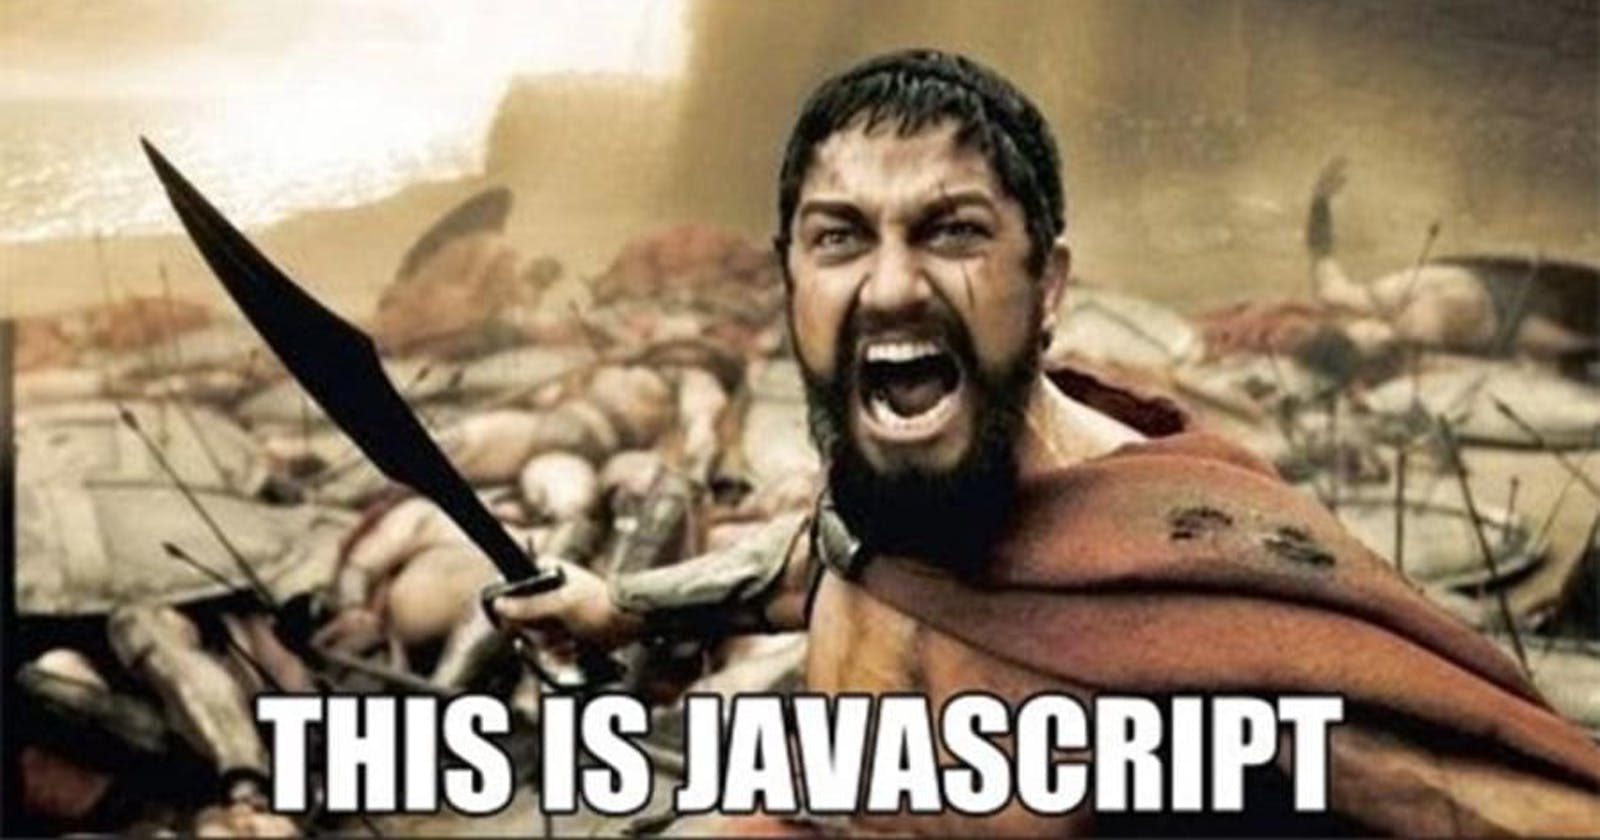 Learning Javascript in my way.